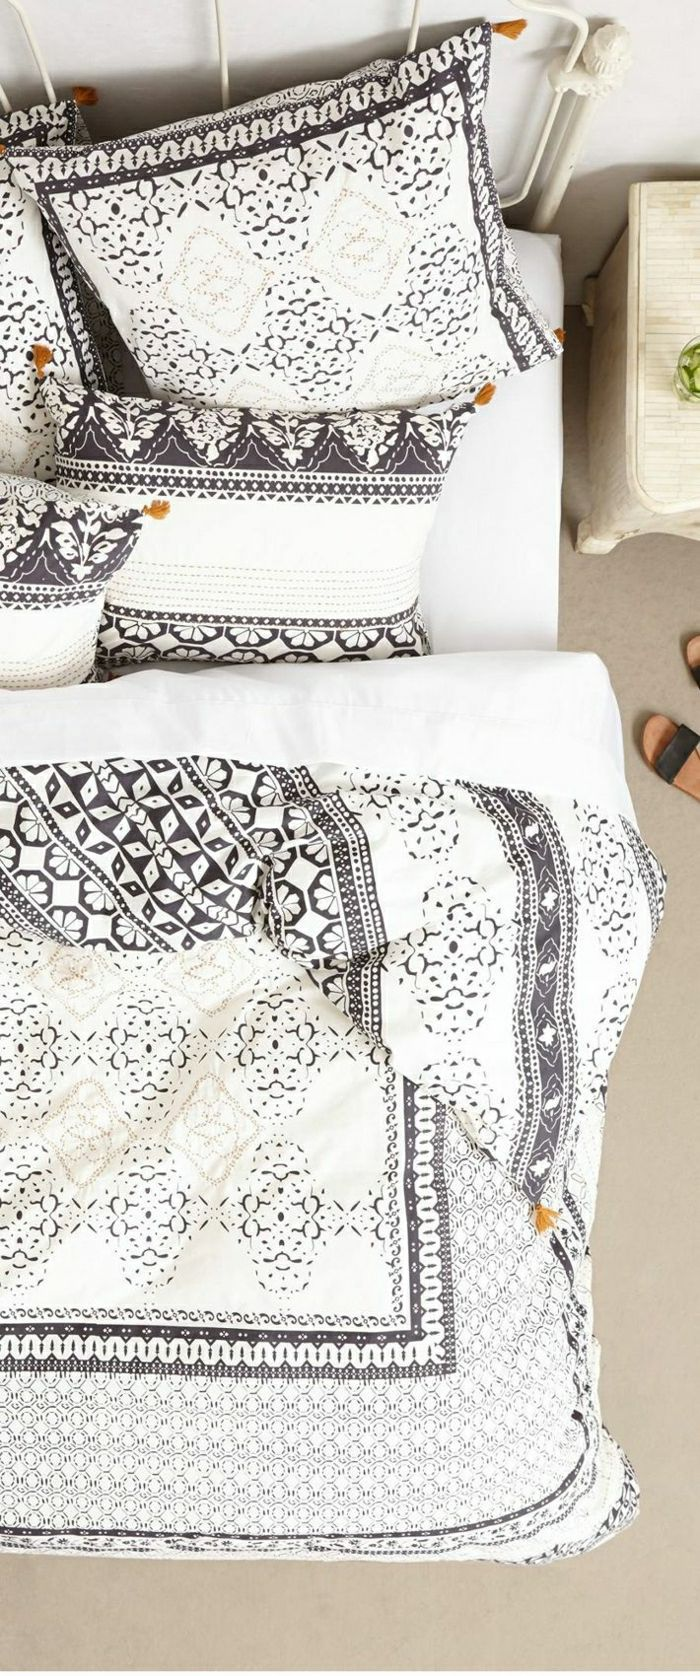 Bettwäsche Dream Boho Chic Design Der Bettwäsche Dream Home Pinterest Bedroom